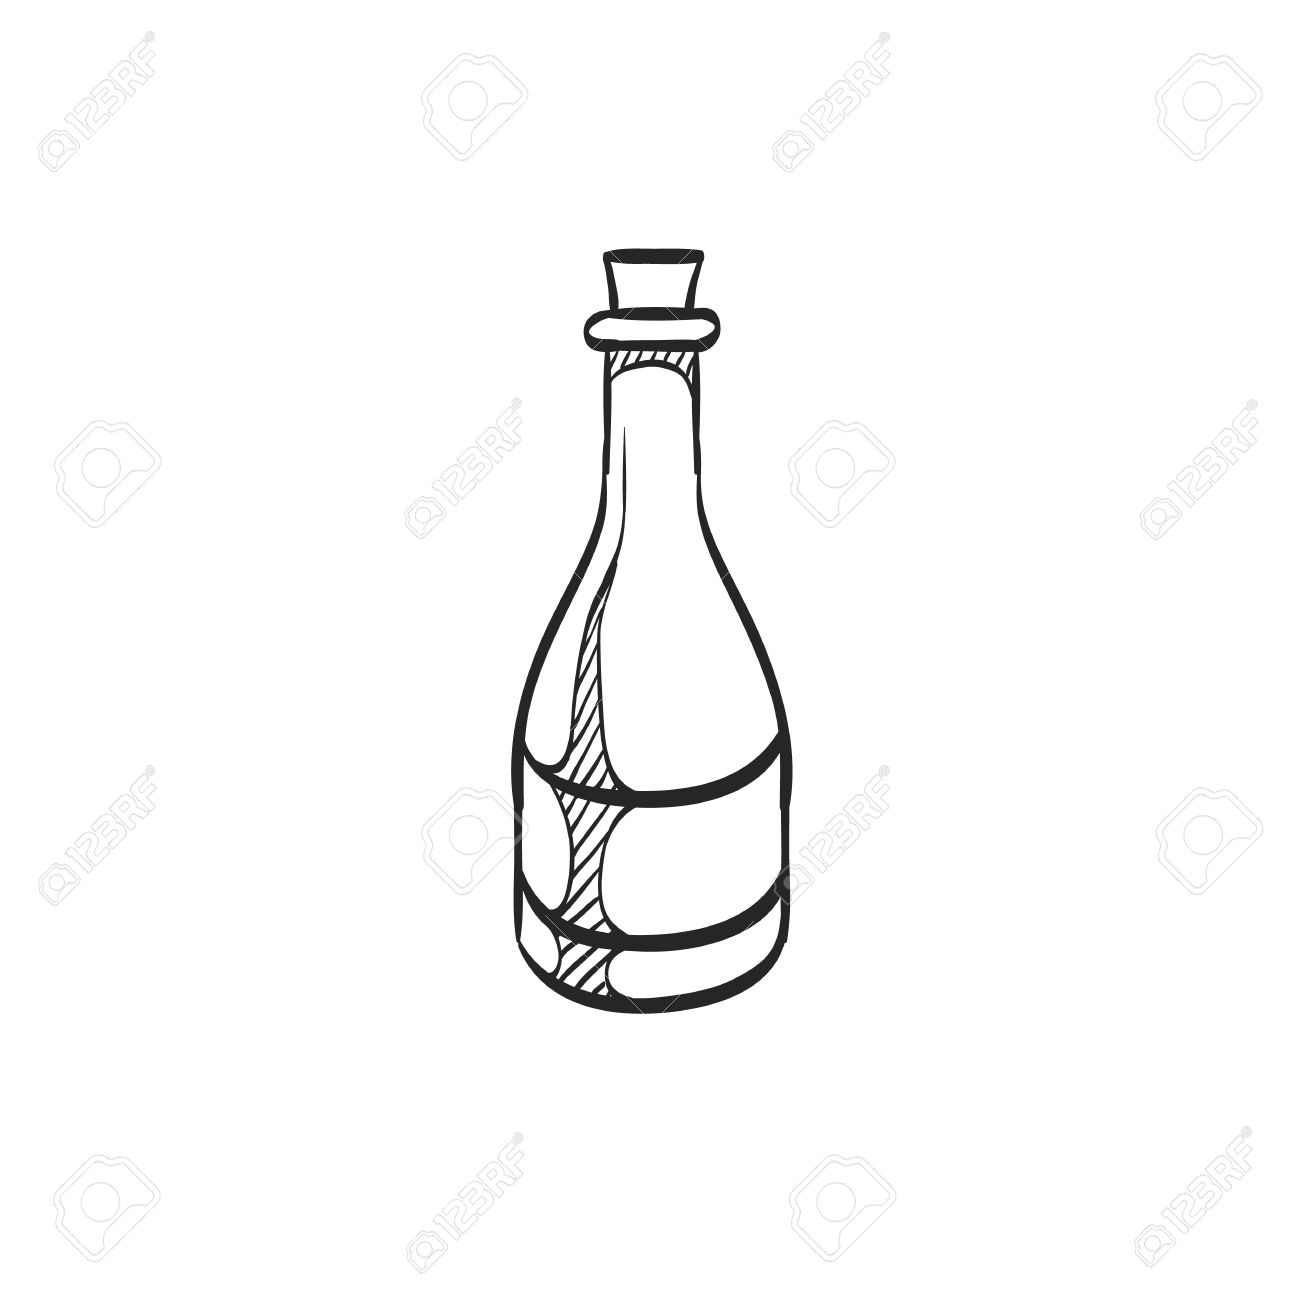 1300x1300 Wine Bottle Icon In Doodle Sketch Lines. Drink Romantic Couple